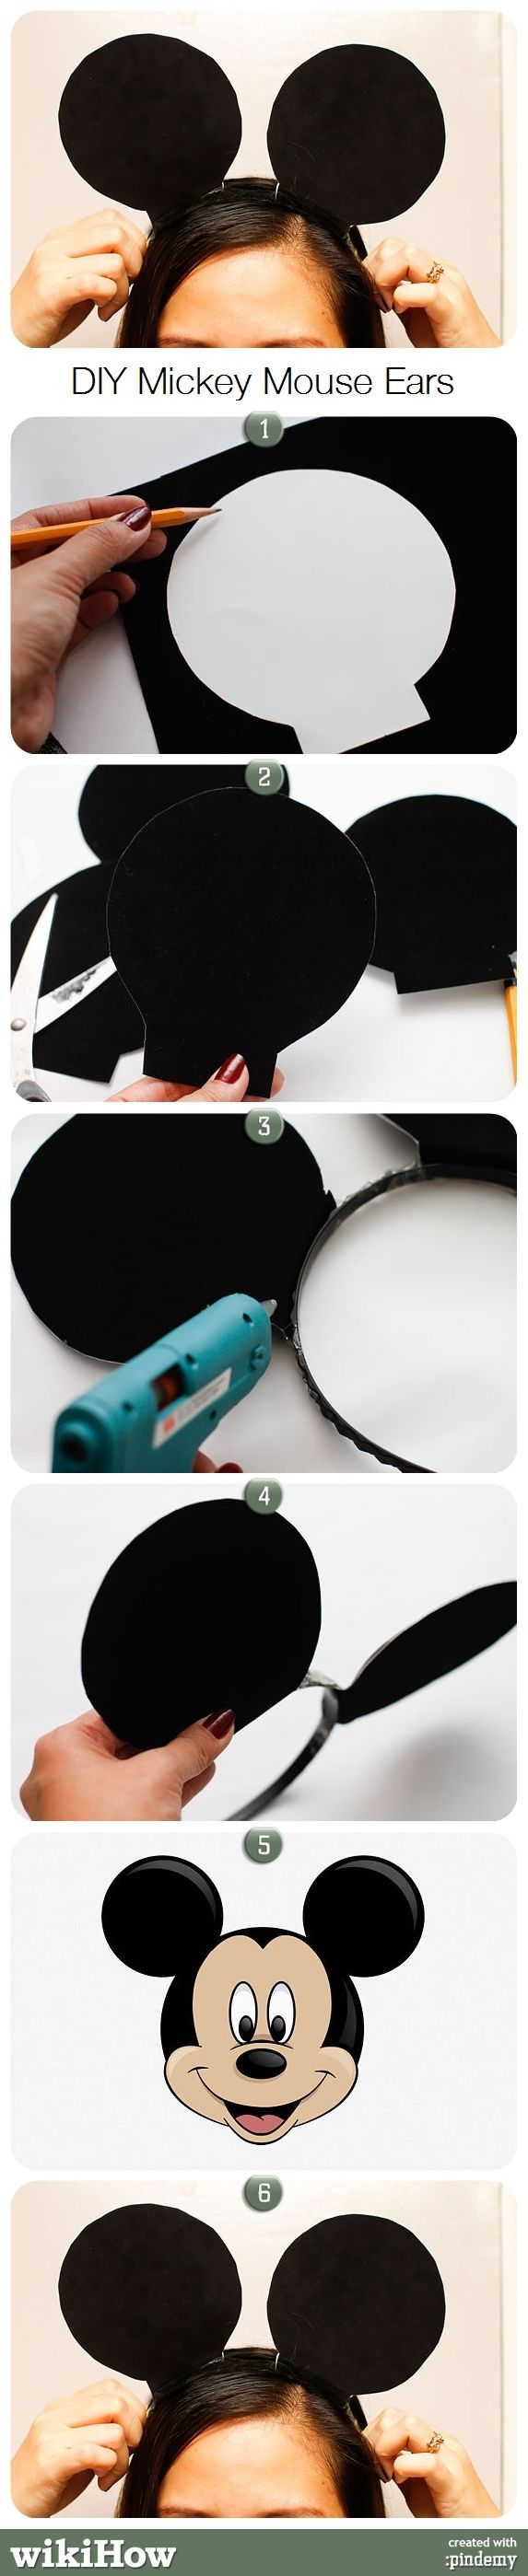 make mickey mouse ears wikihow for kids pinterest kost m haarreifen und fasching. Black Bedroom Furniture Sets. Home Design Ideas